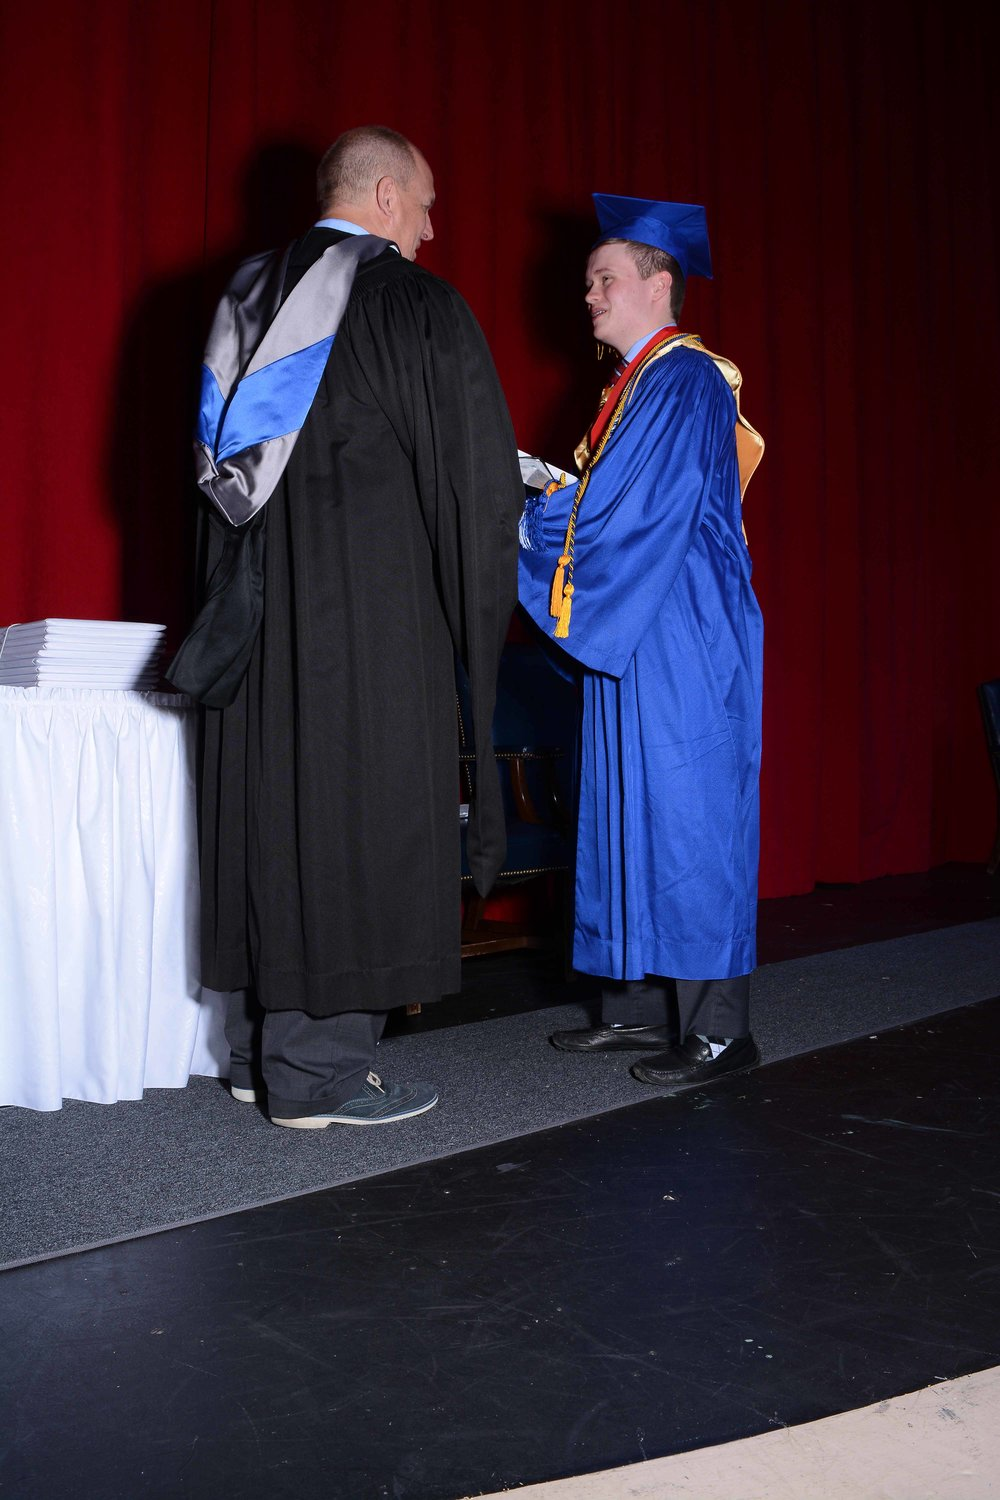 May14 Commencement10.jpg